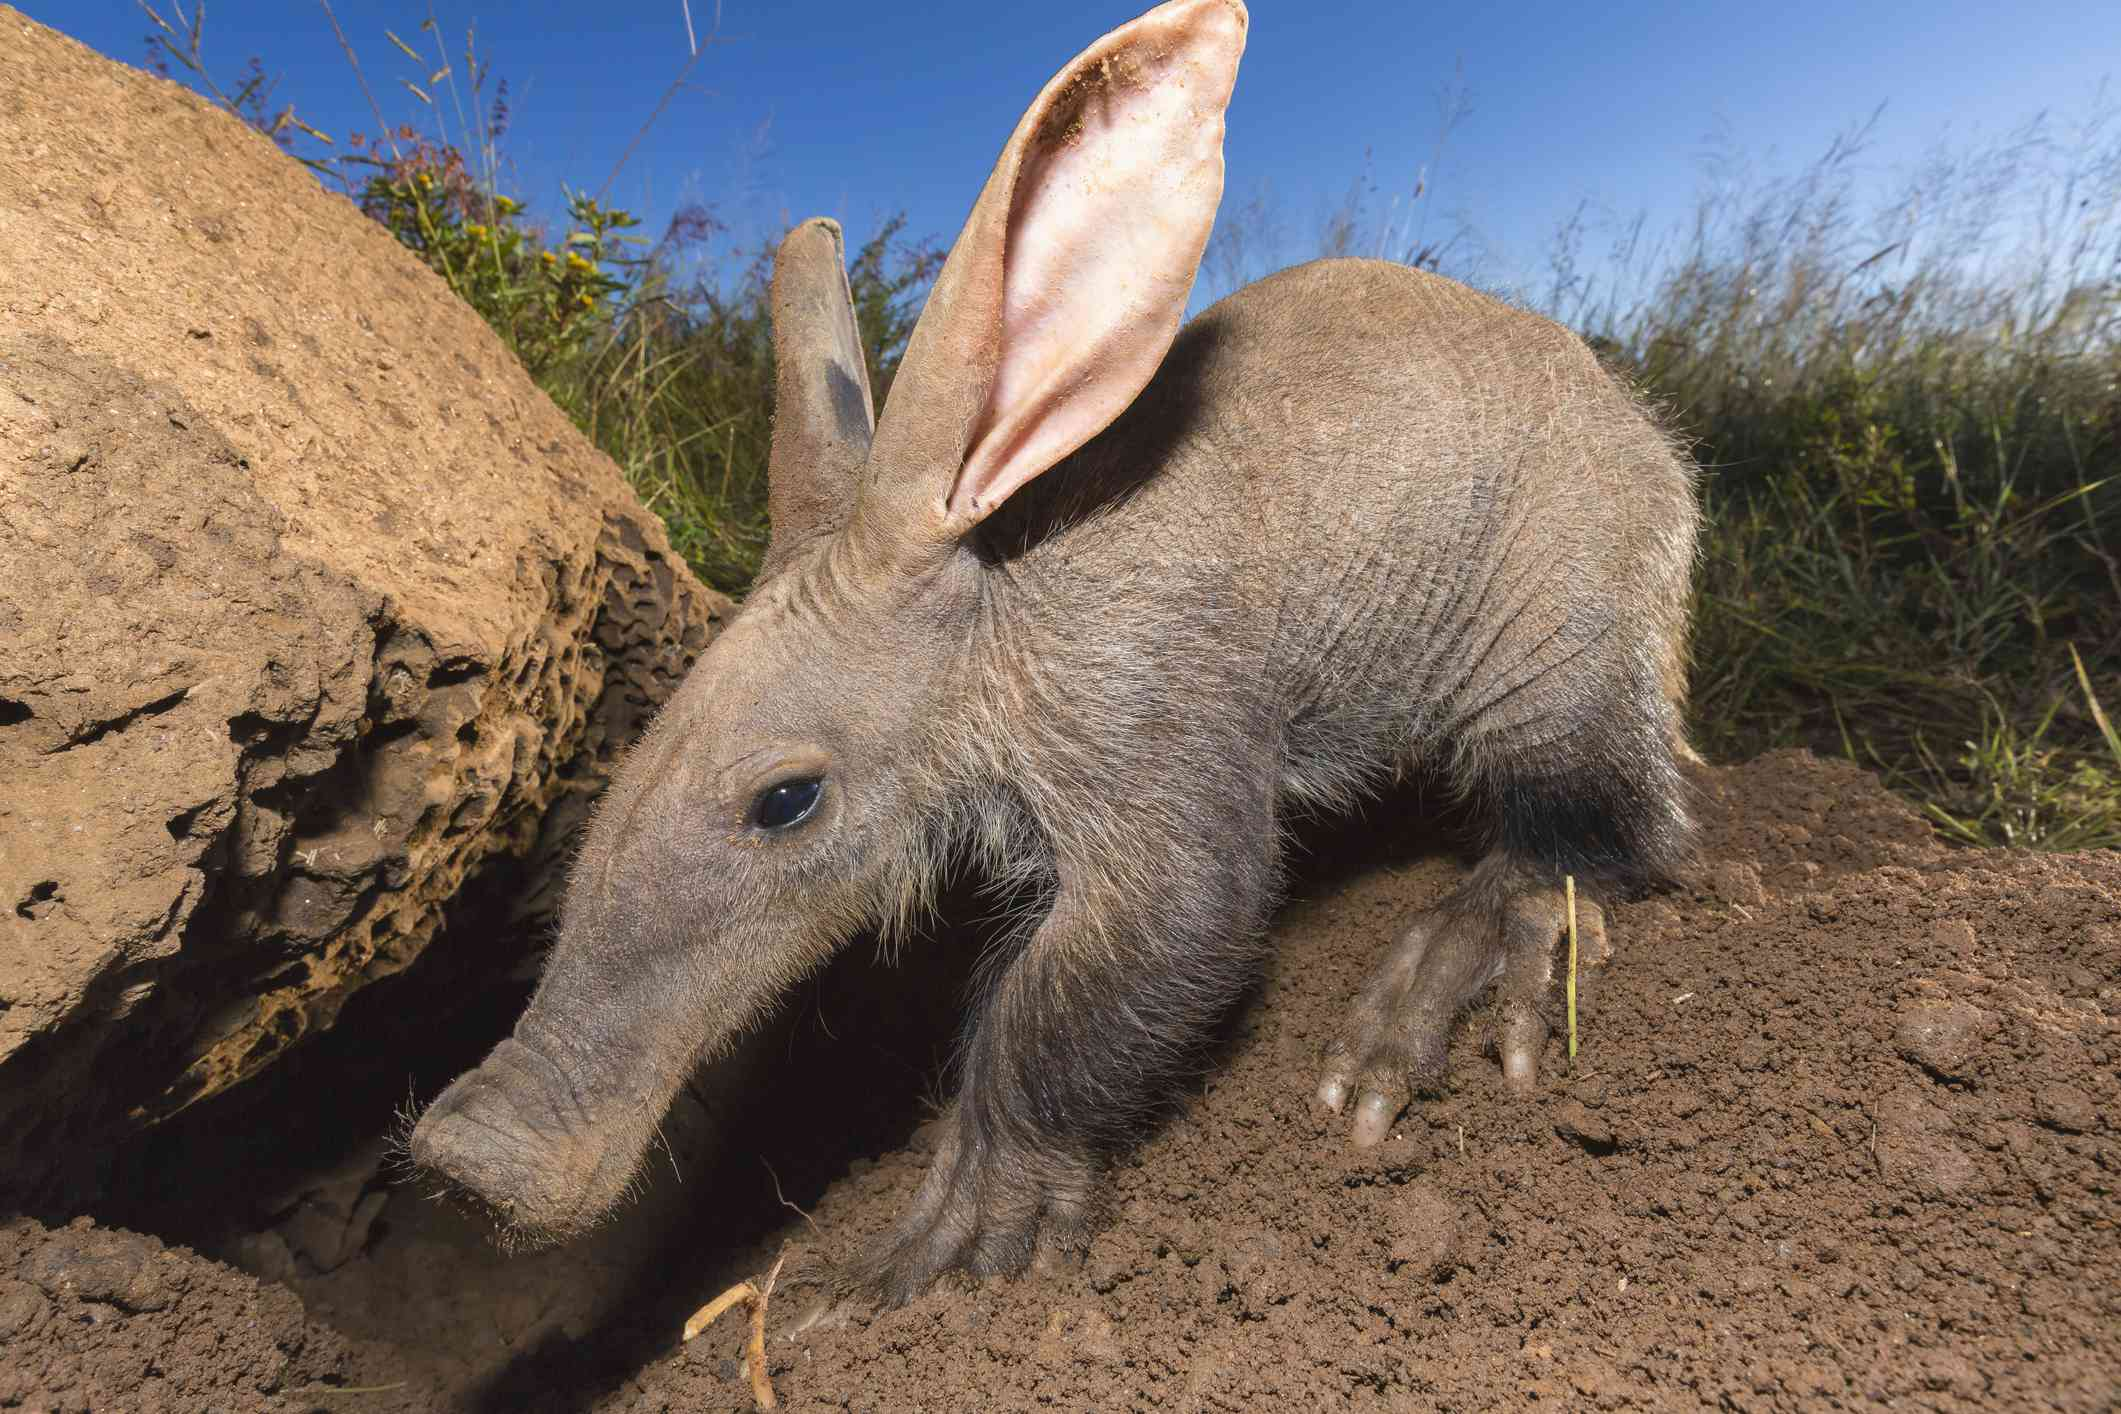 Young Aardvark(Orycteropus afer)looking for ants and termites.Namibia